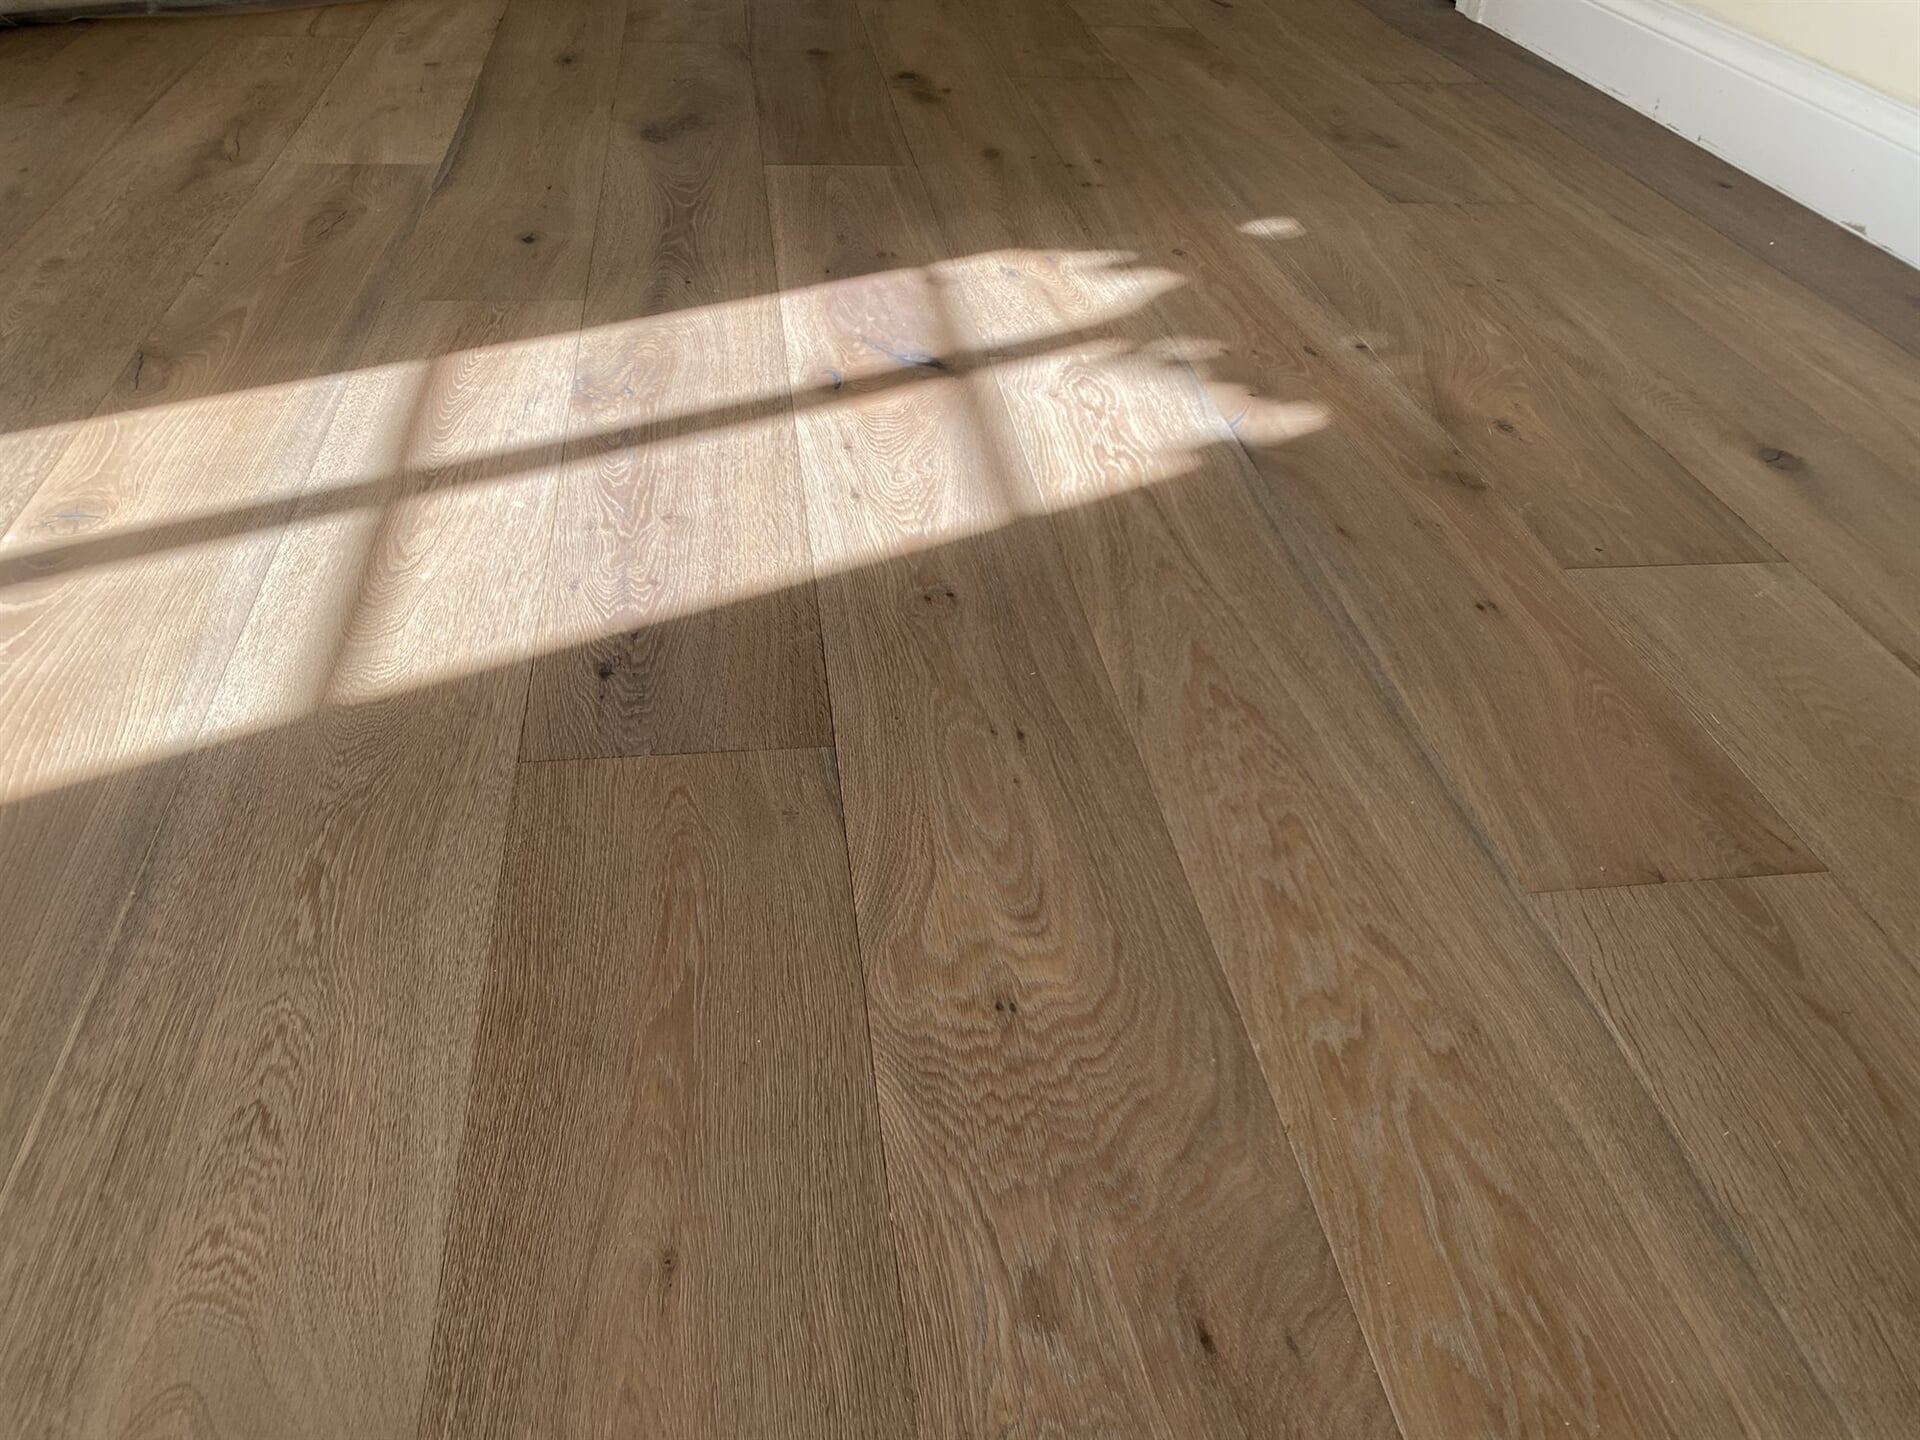 Beautiful new flooring in West Palm Beach, FL from Floors For You Kitchen & Bath